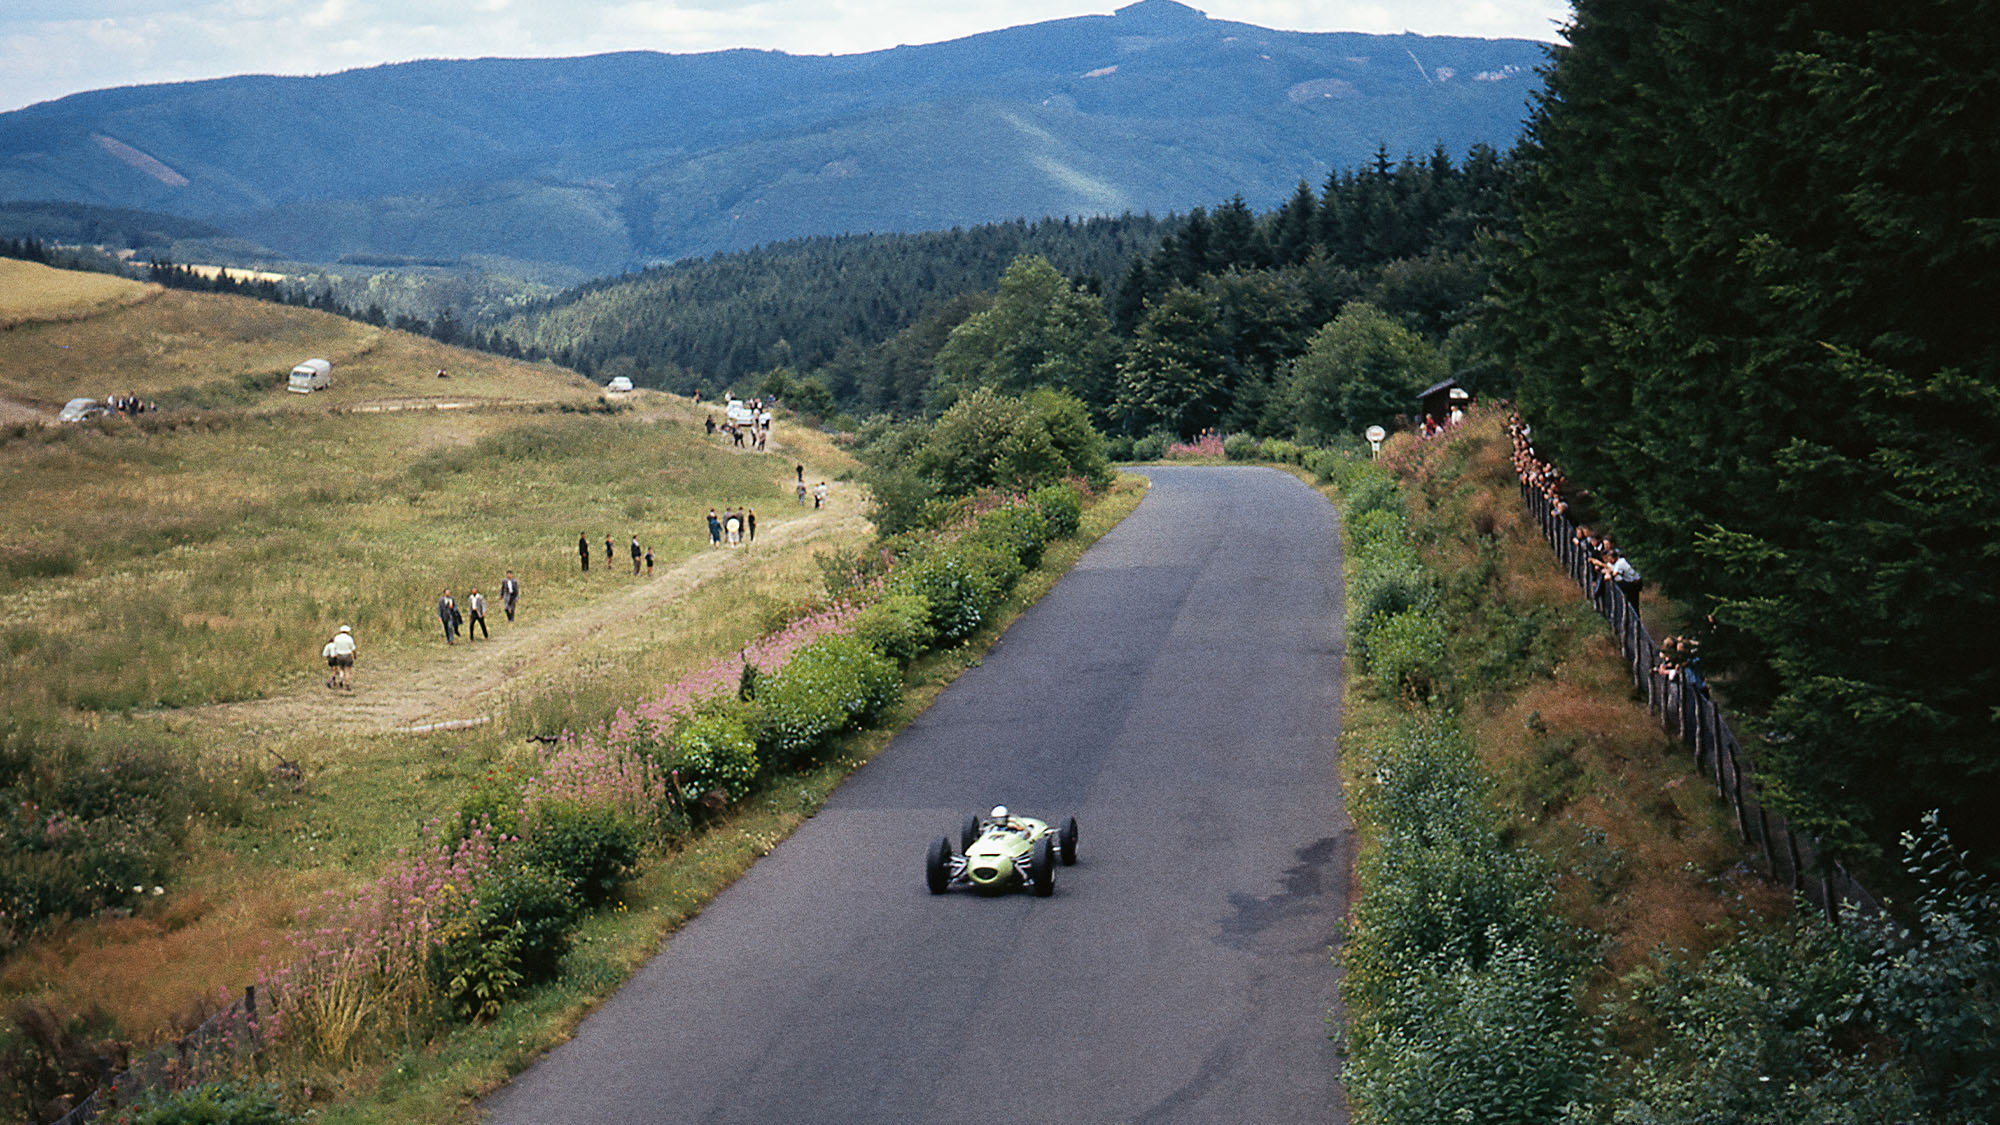 Jim Hall is but a tiny dot on the Eifel landscape as he races his Lotus-BRM 24 at the Nürburgring in 1963